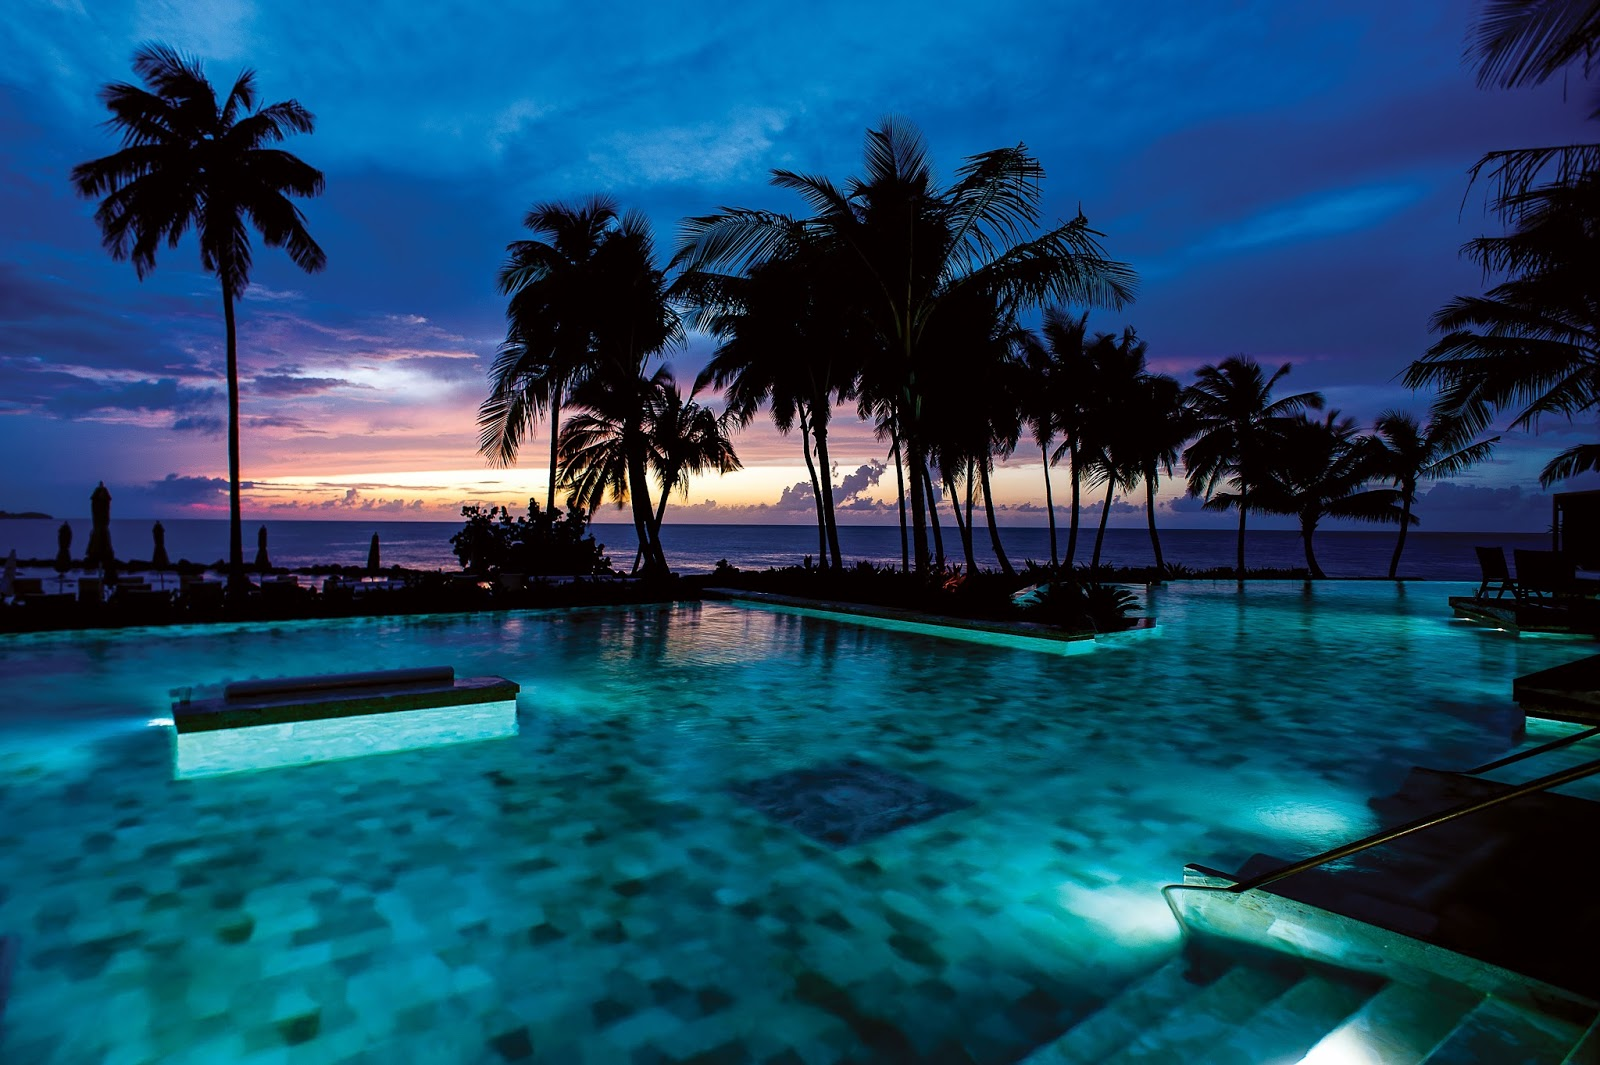 The Best Hotel To Stay In Puerto Rico